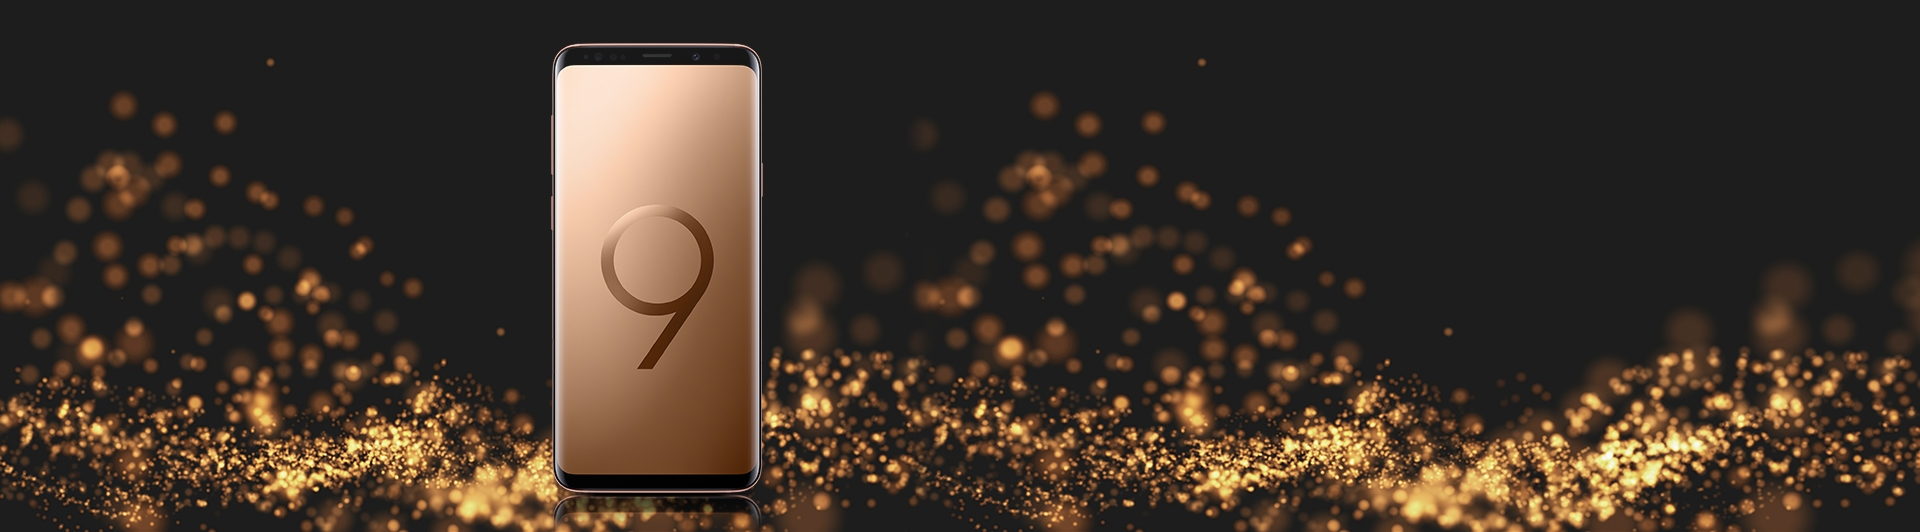 SAMSUNG GALAXY S9 PLUS 128GB VÀNG